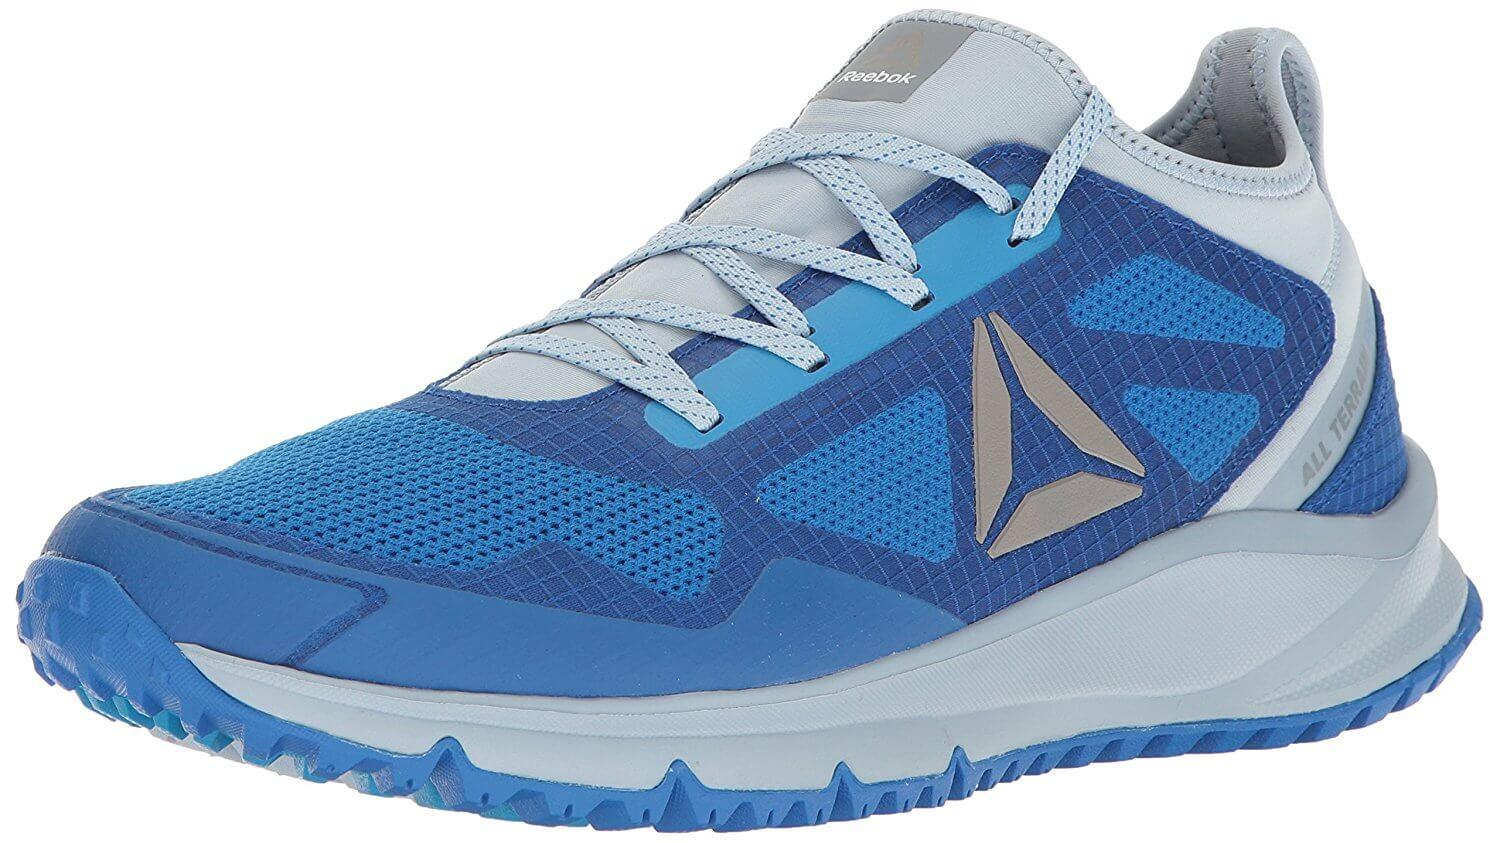 The Reebok All Terrain Freedom is a unique trail shoe